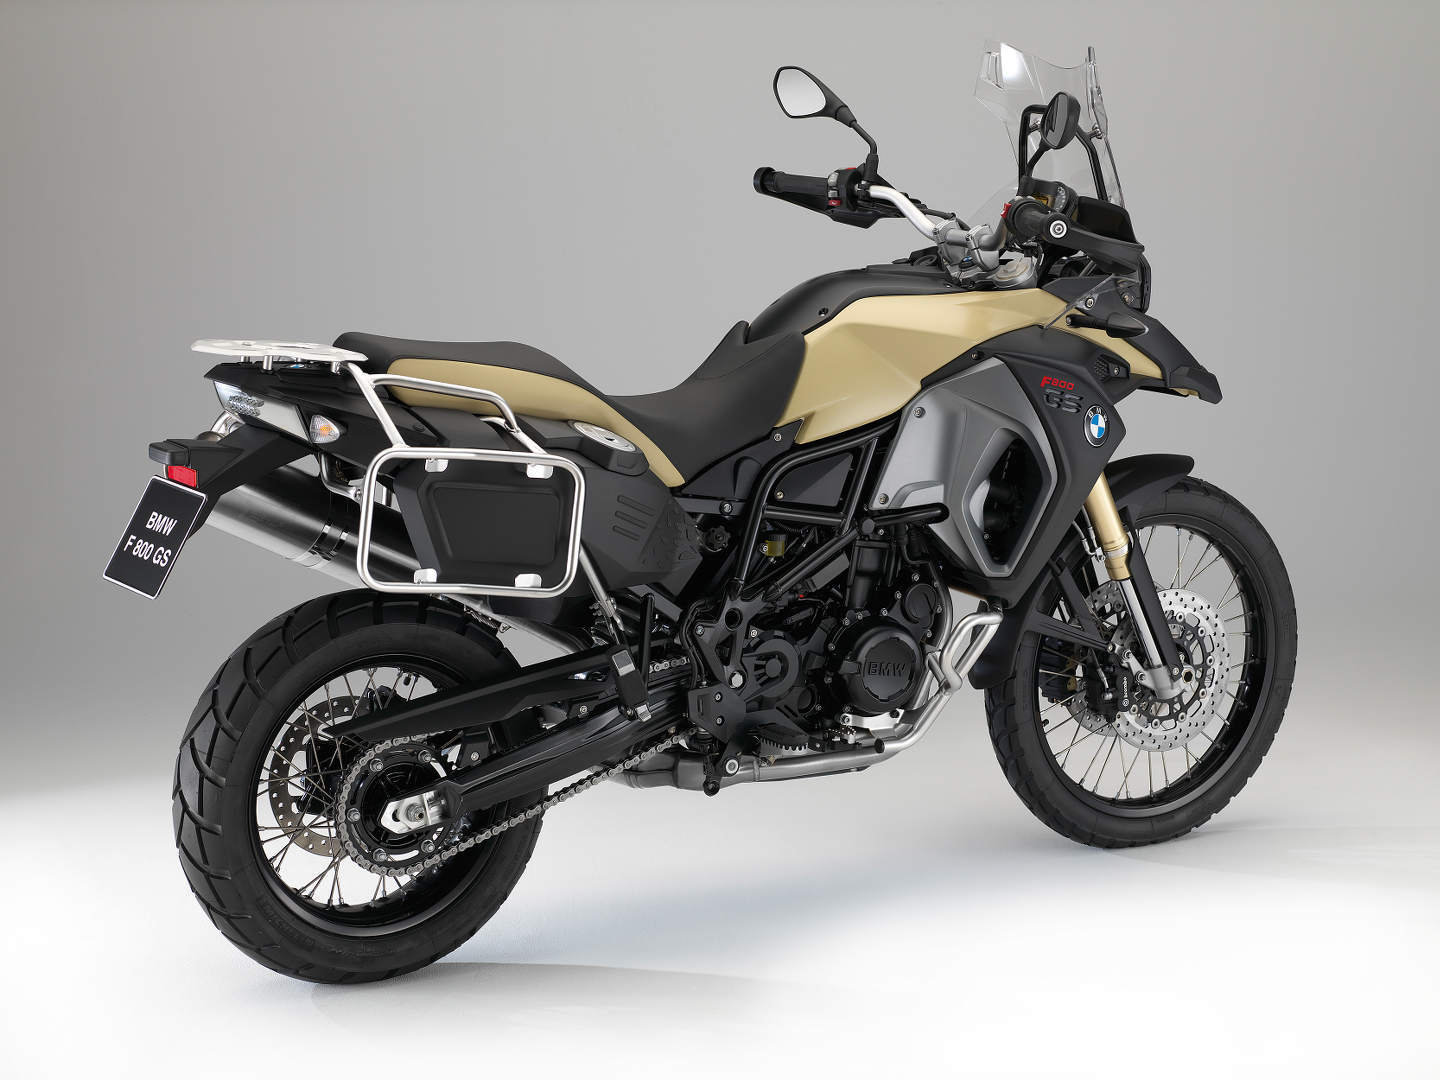 BMW F800 GS Adventure 35kw - CARNET A2